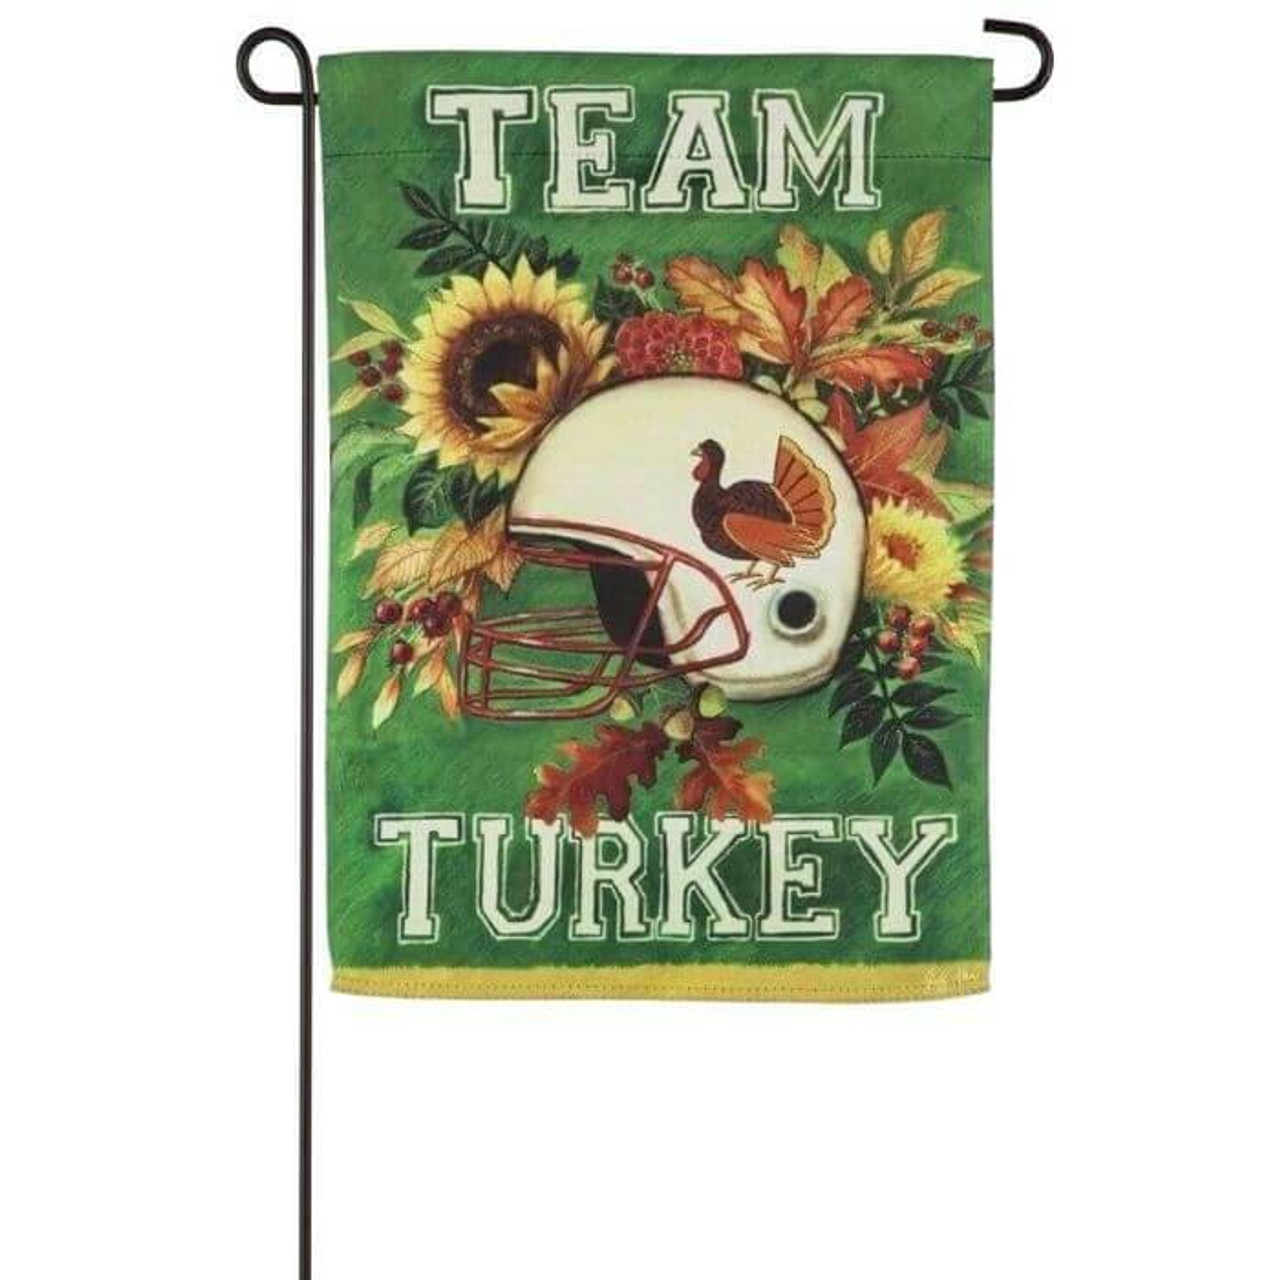 """The Team Turkey Garden Flag features a green background with yellow, orange, and green leaves, sunflowers, and mums. In the middle of the array of flowers and leaves is a white football helmet with the picture of a turkey on it. At the top of the flag is the word """"TEAM"""" in white varsity-like text, and at the bottom is """"TURKEY"""" in the same font."""